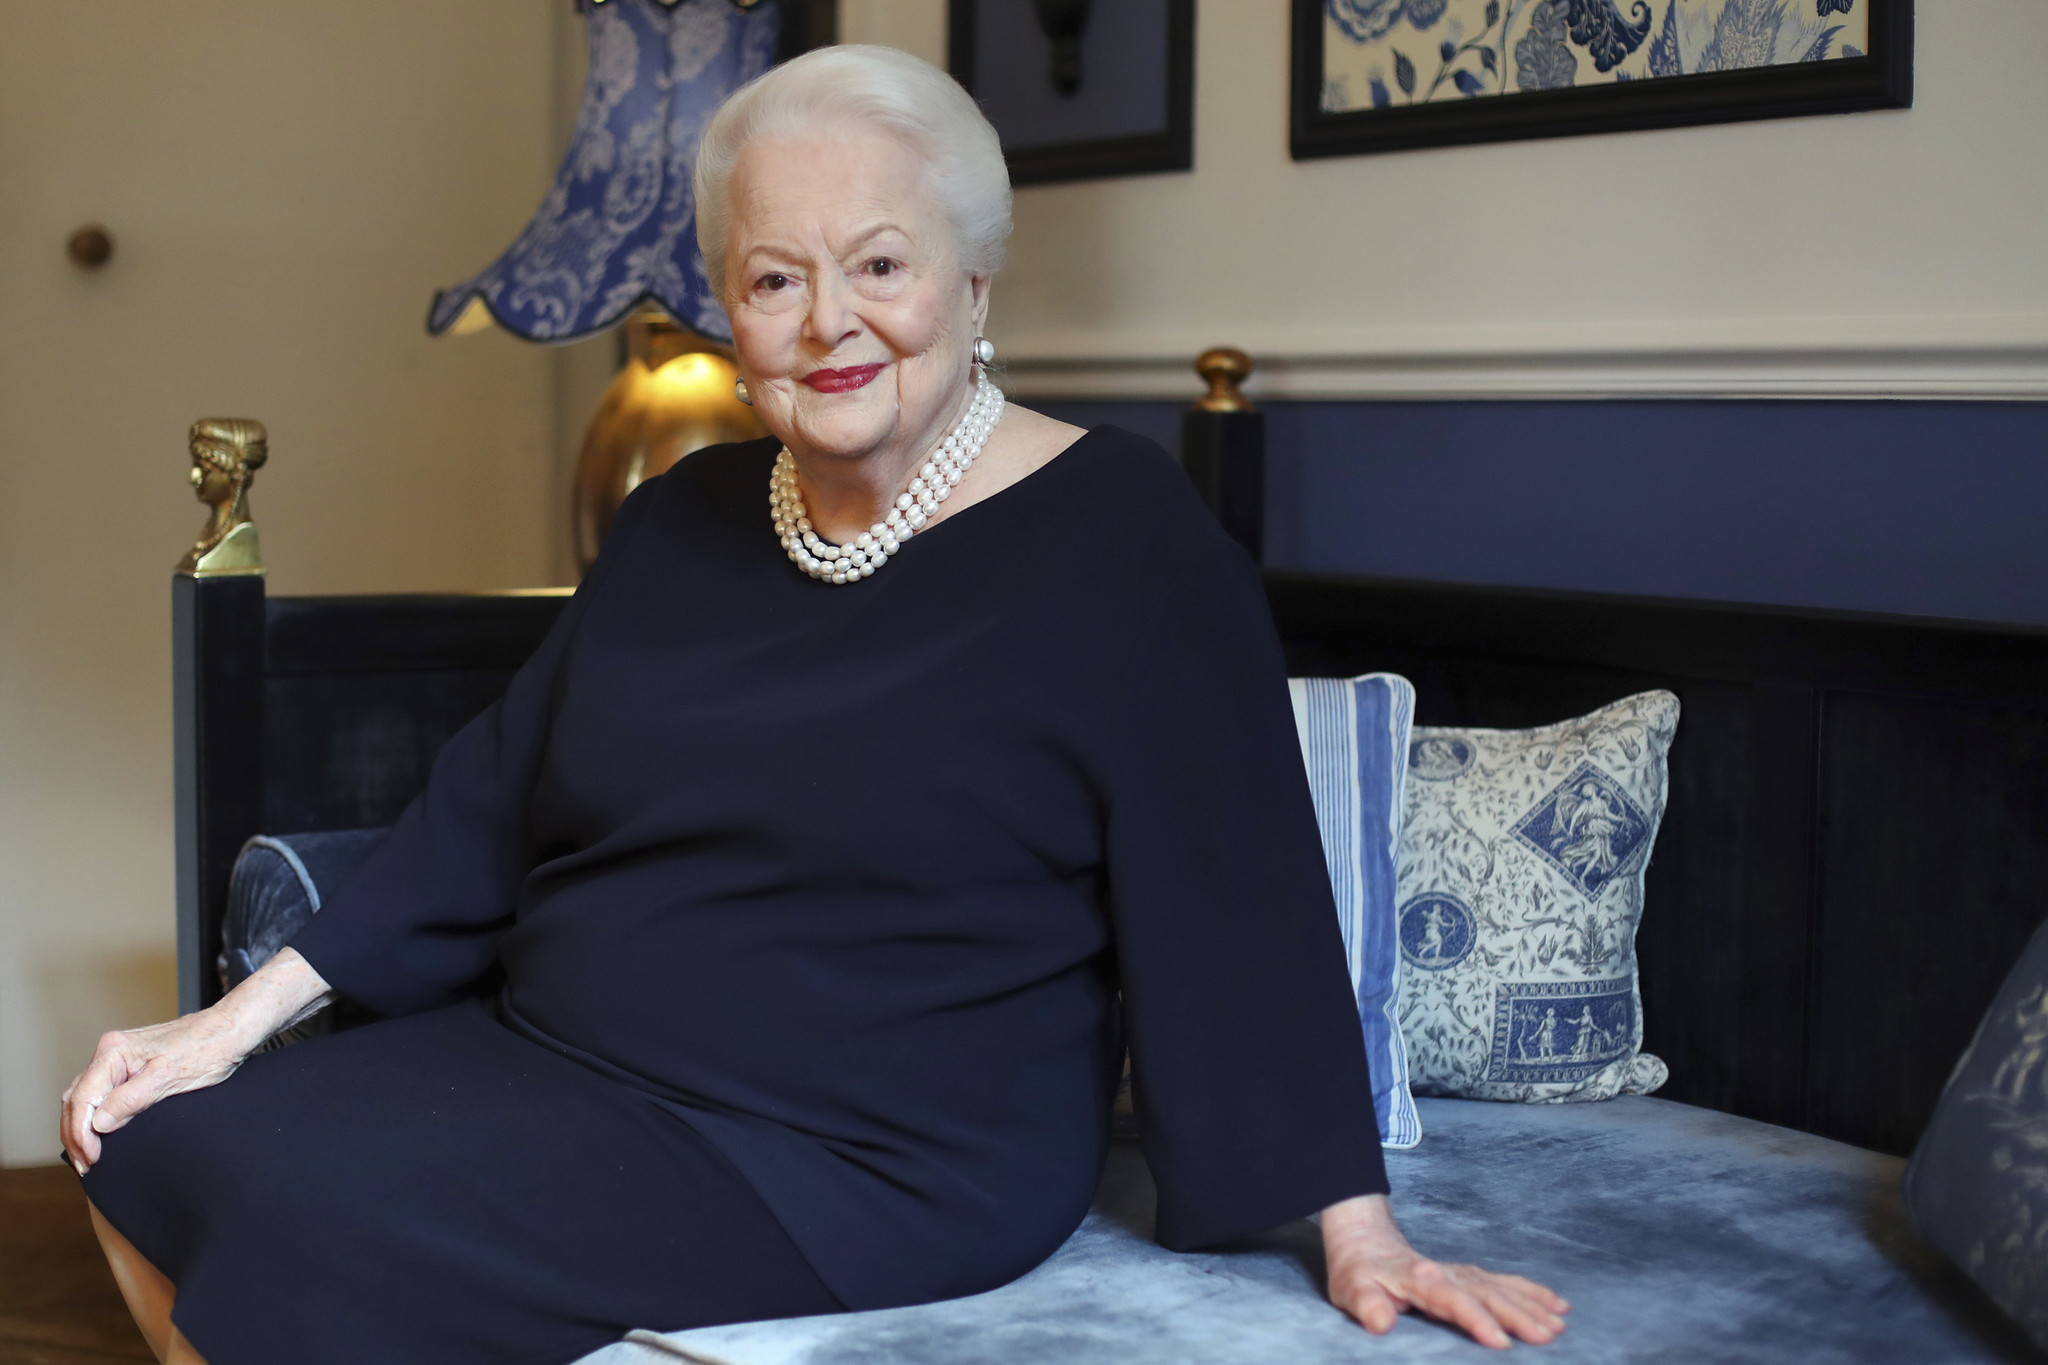 Olivia de Havilland in June 2016. (Thibault Camus / Associated Press)